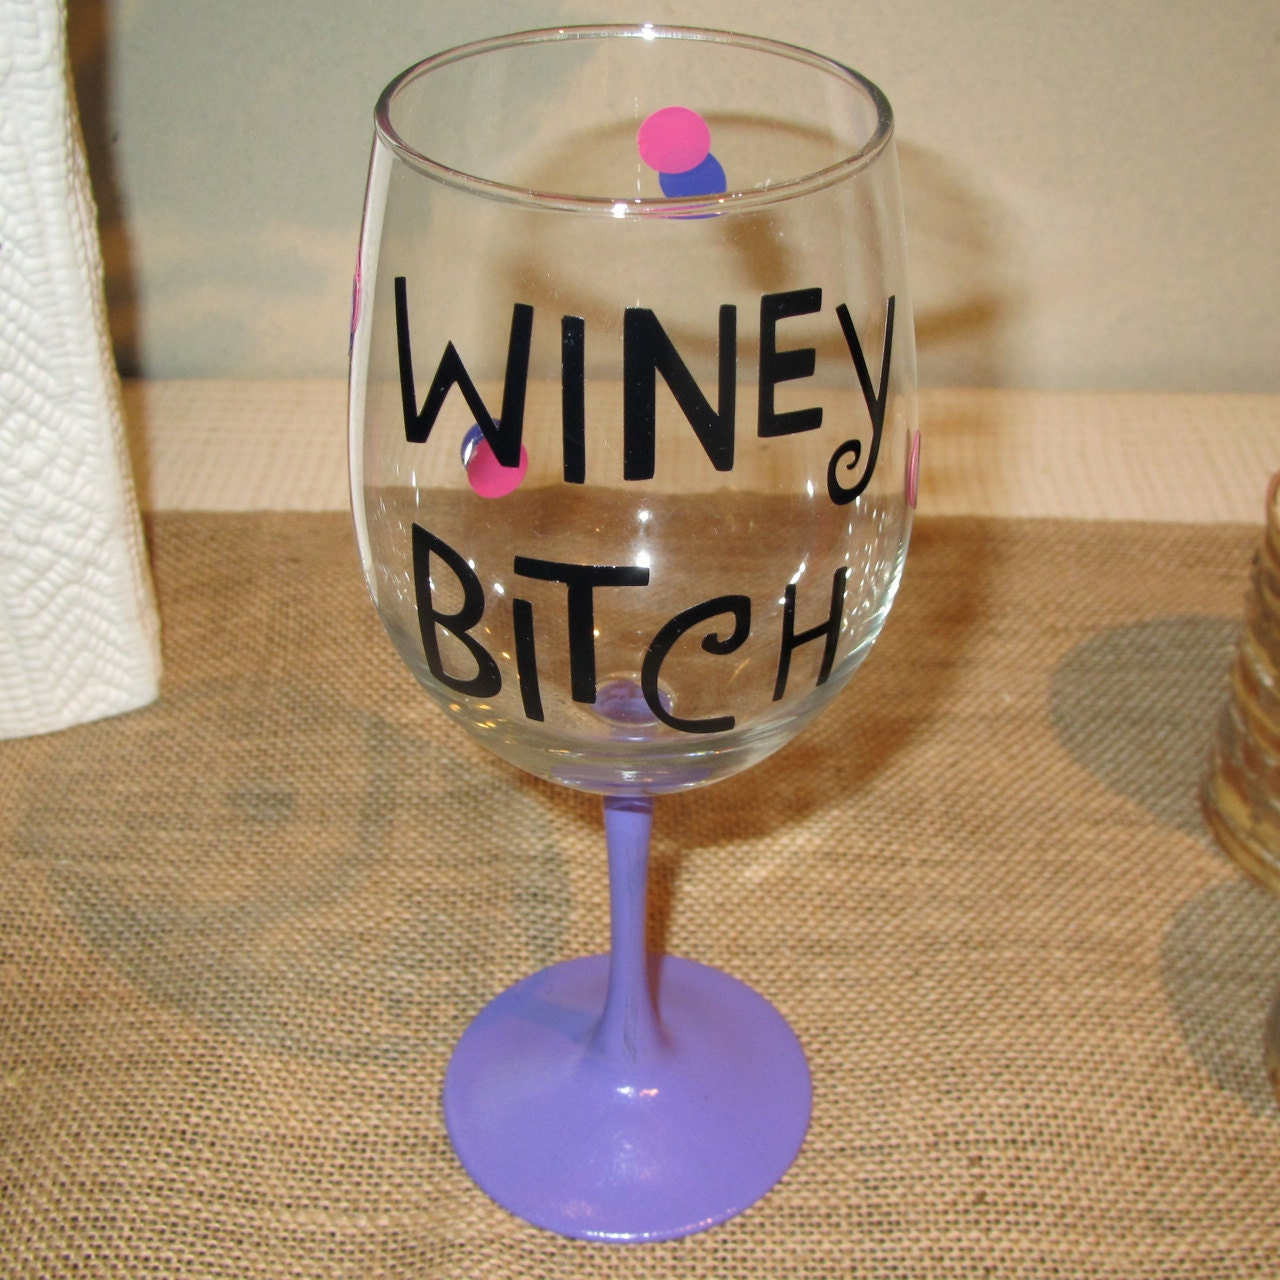 items similar to winey bitch painted   crafted wine glass  glasses on etsy